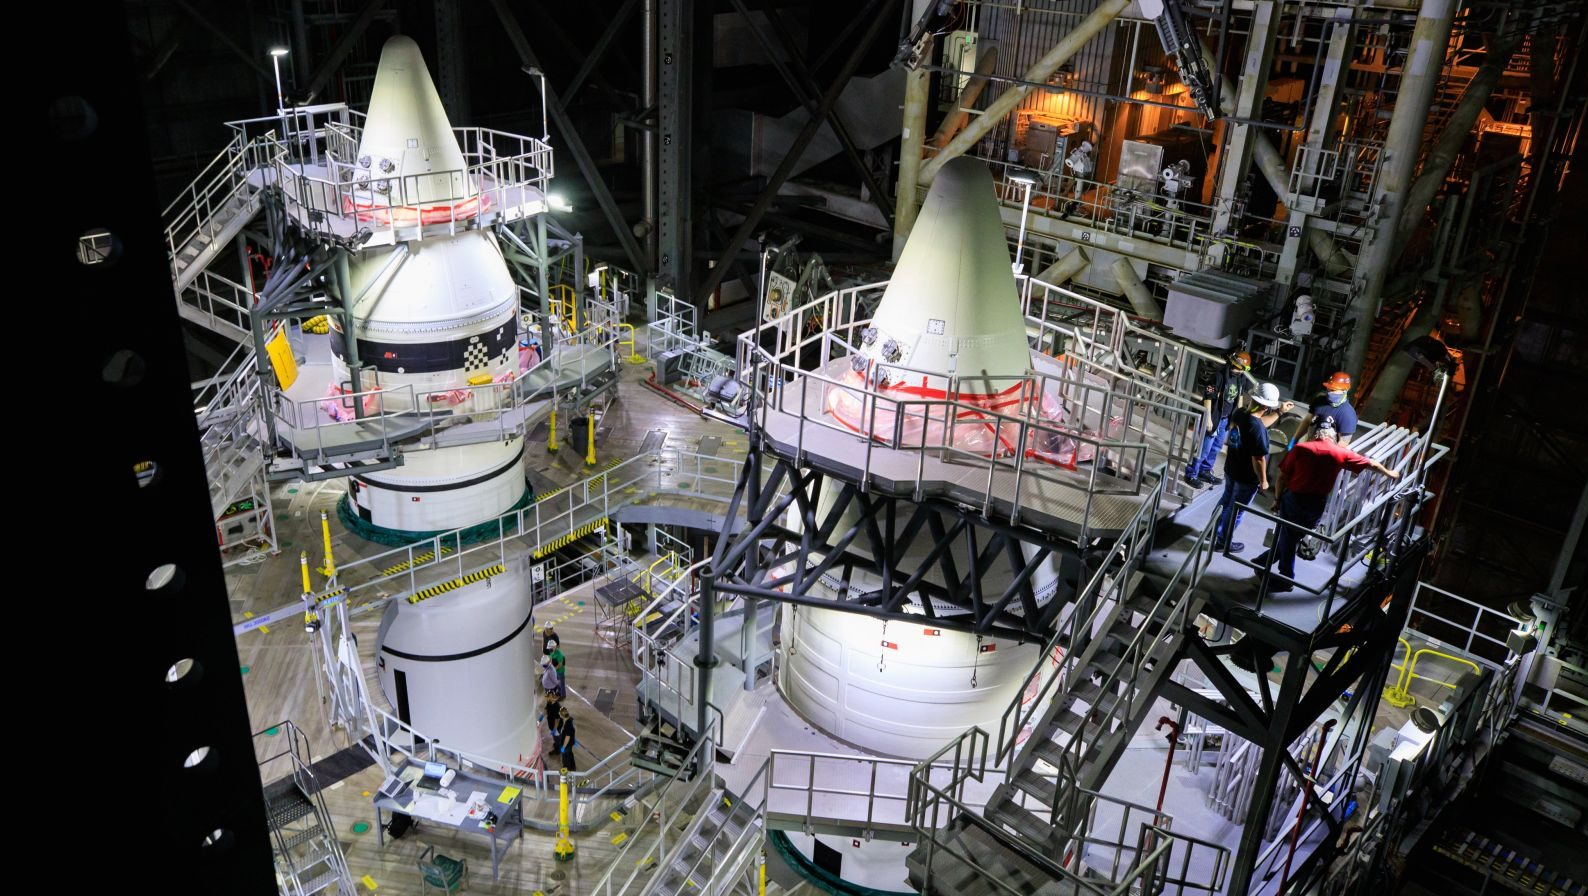 NASA finishes stacking the twin solid rocket boosters that will provide the bulk of the thrust for the Space Launch System during its first two minutes of flight. Credit: NASA